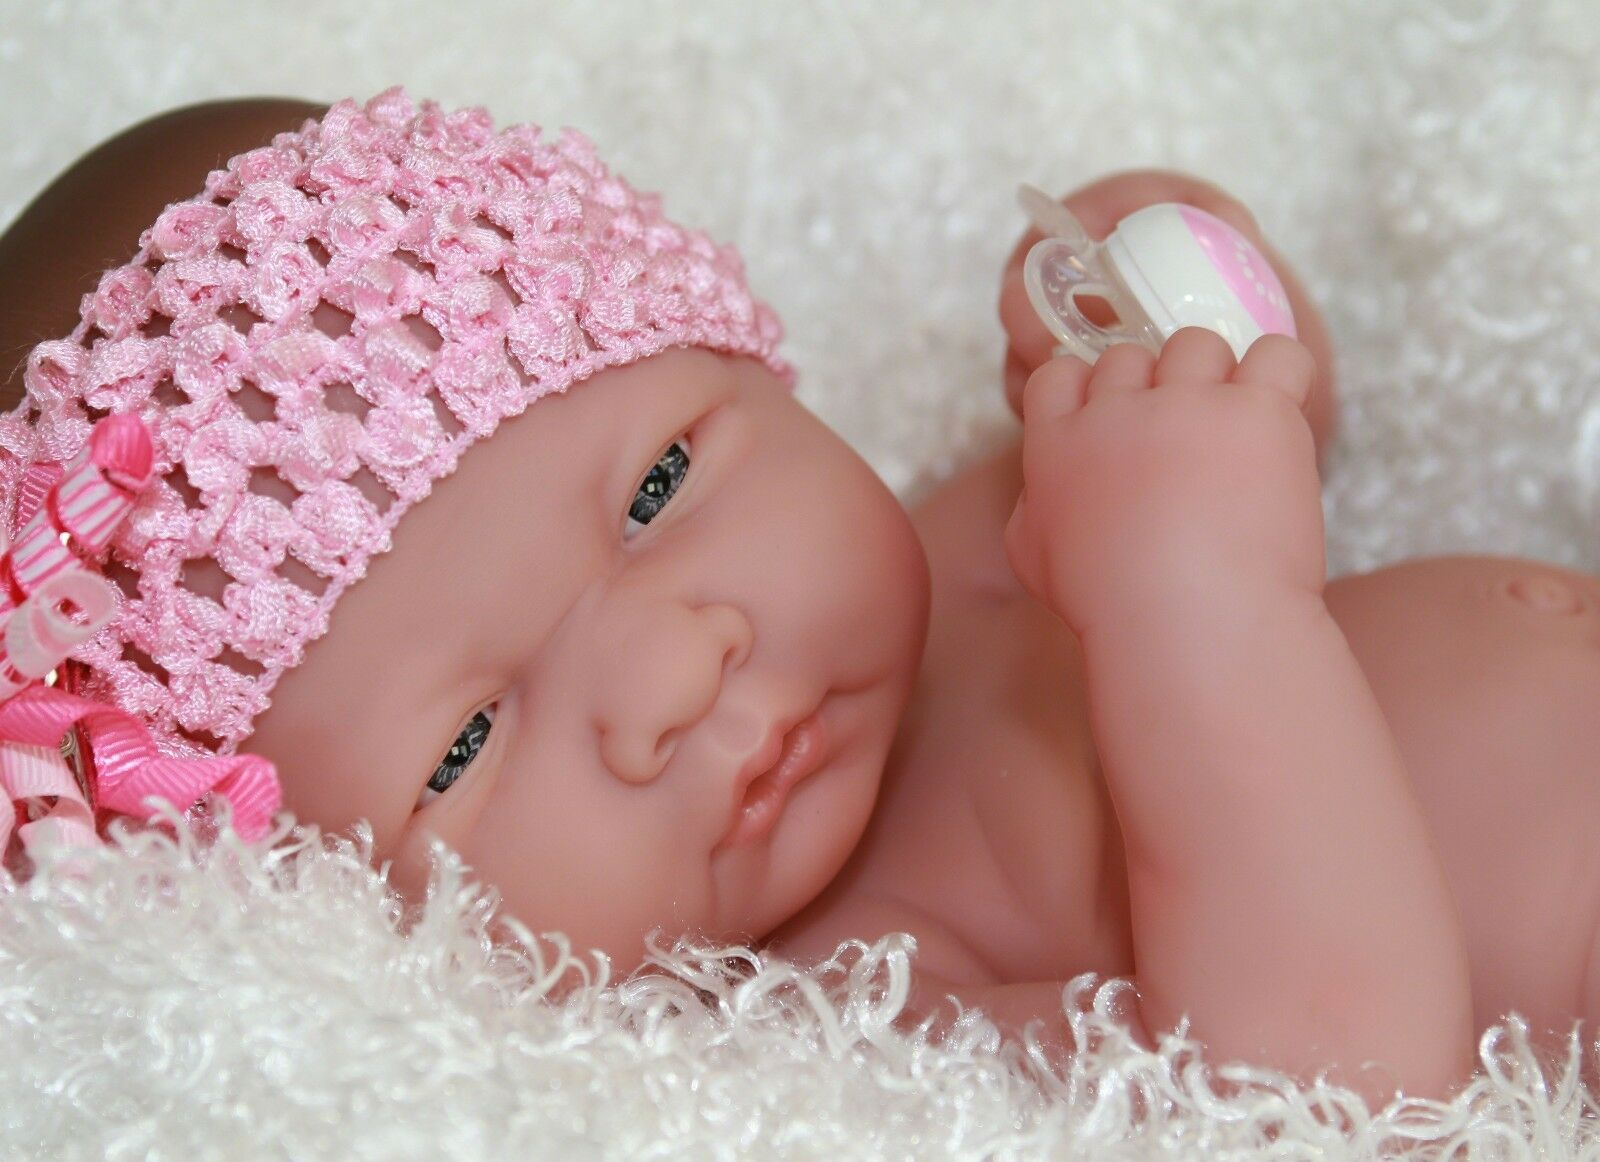 NEW~ Precious Preemie Berenguer La Newborn Doll + Extras - Over 2200+ SOLD